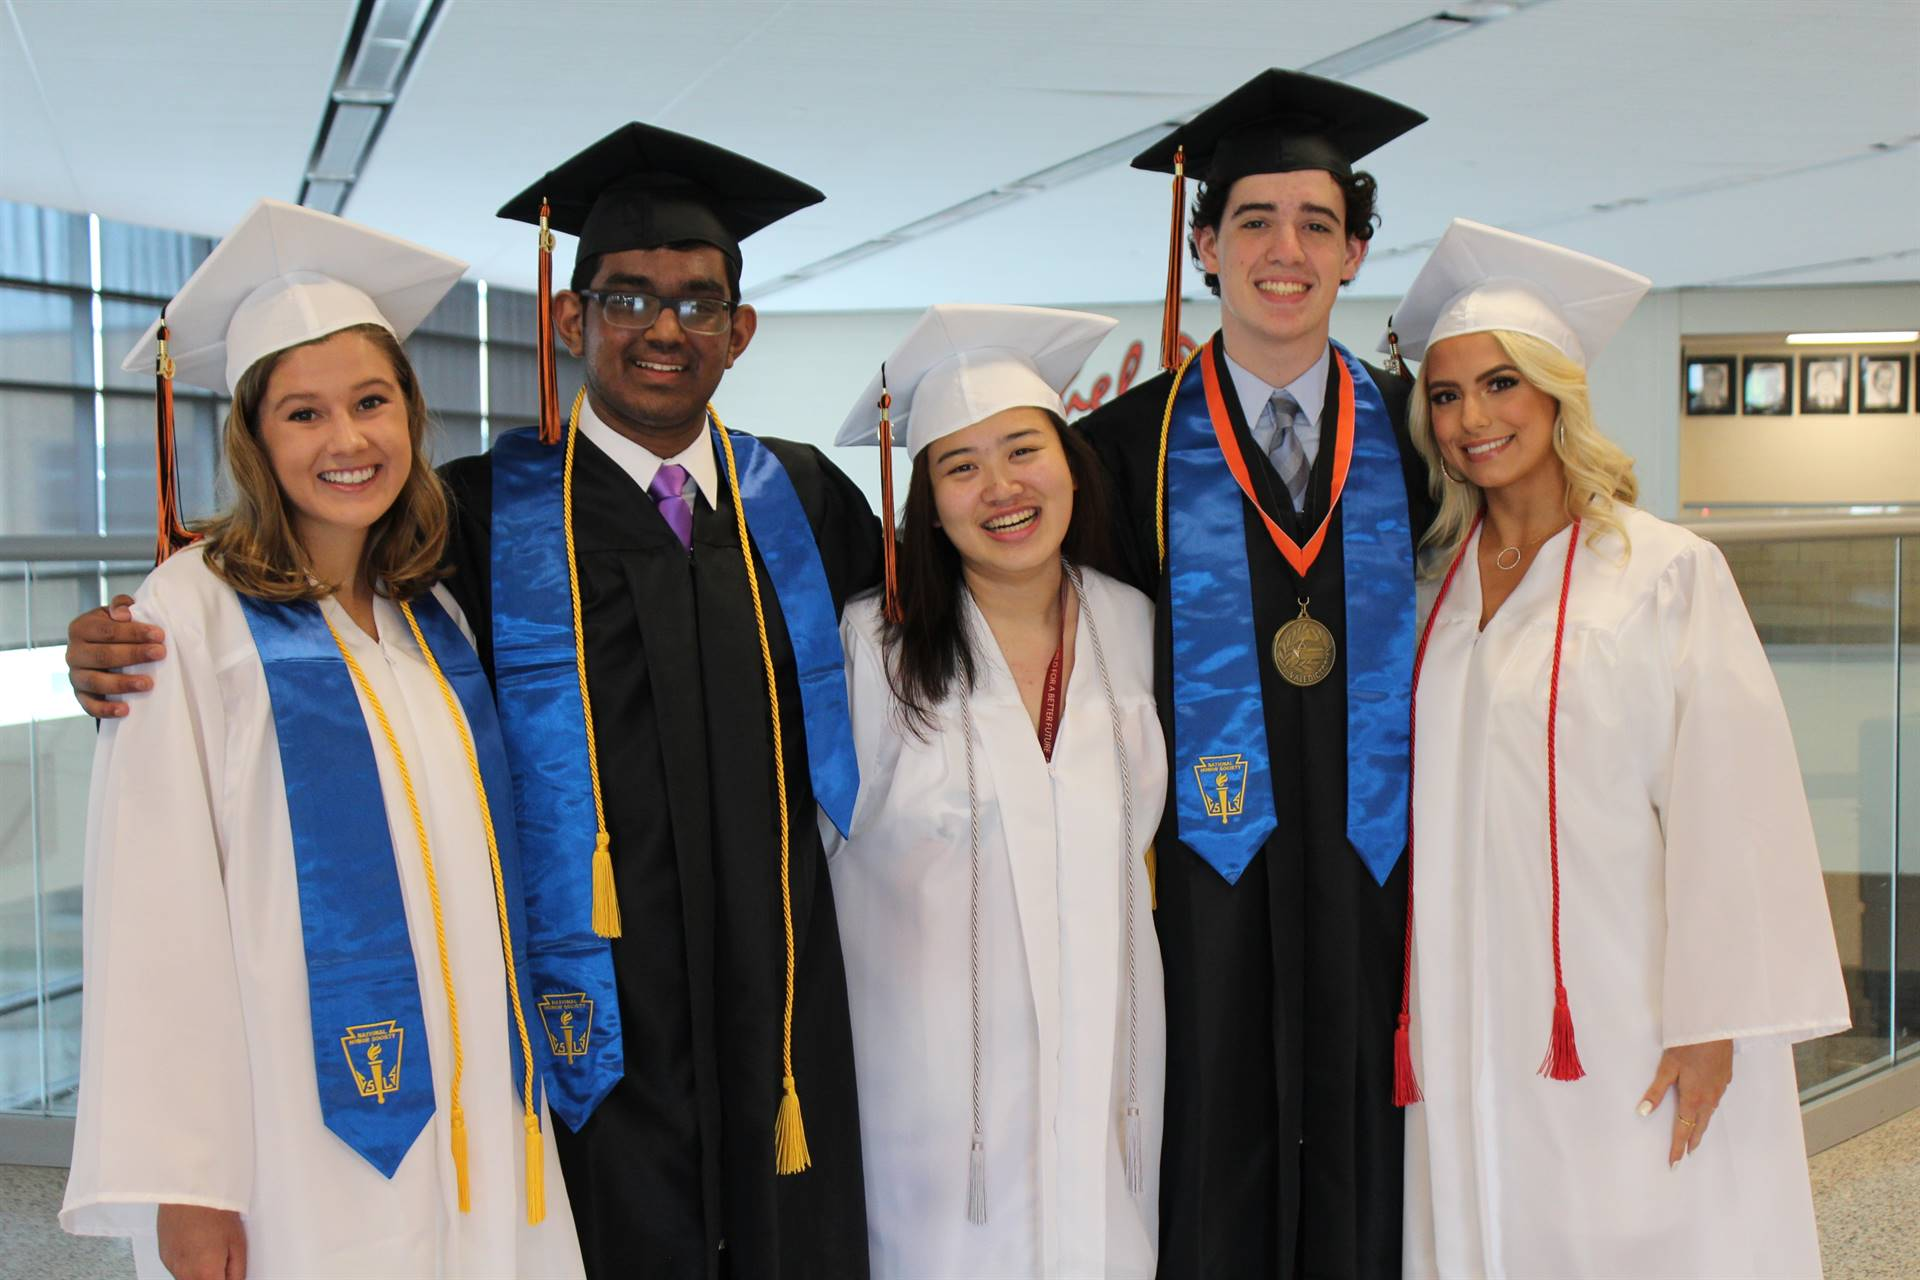 Five members of the Class of 2019 in their caps and gowns